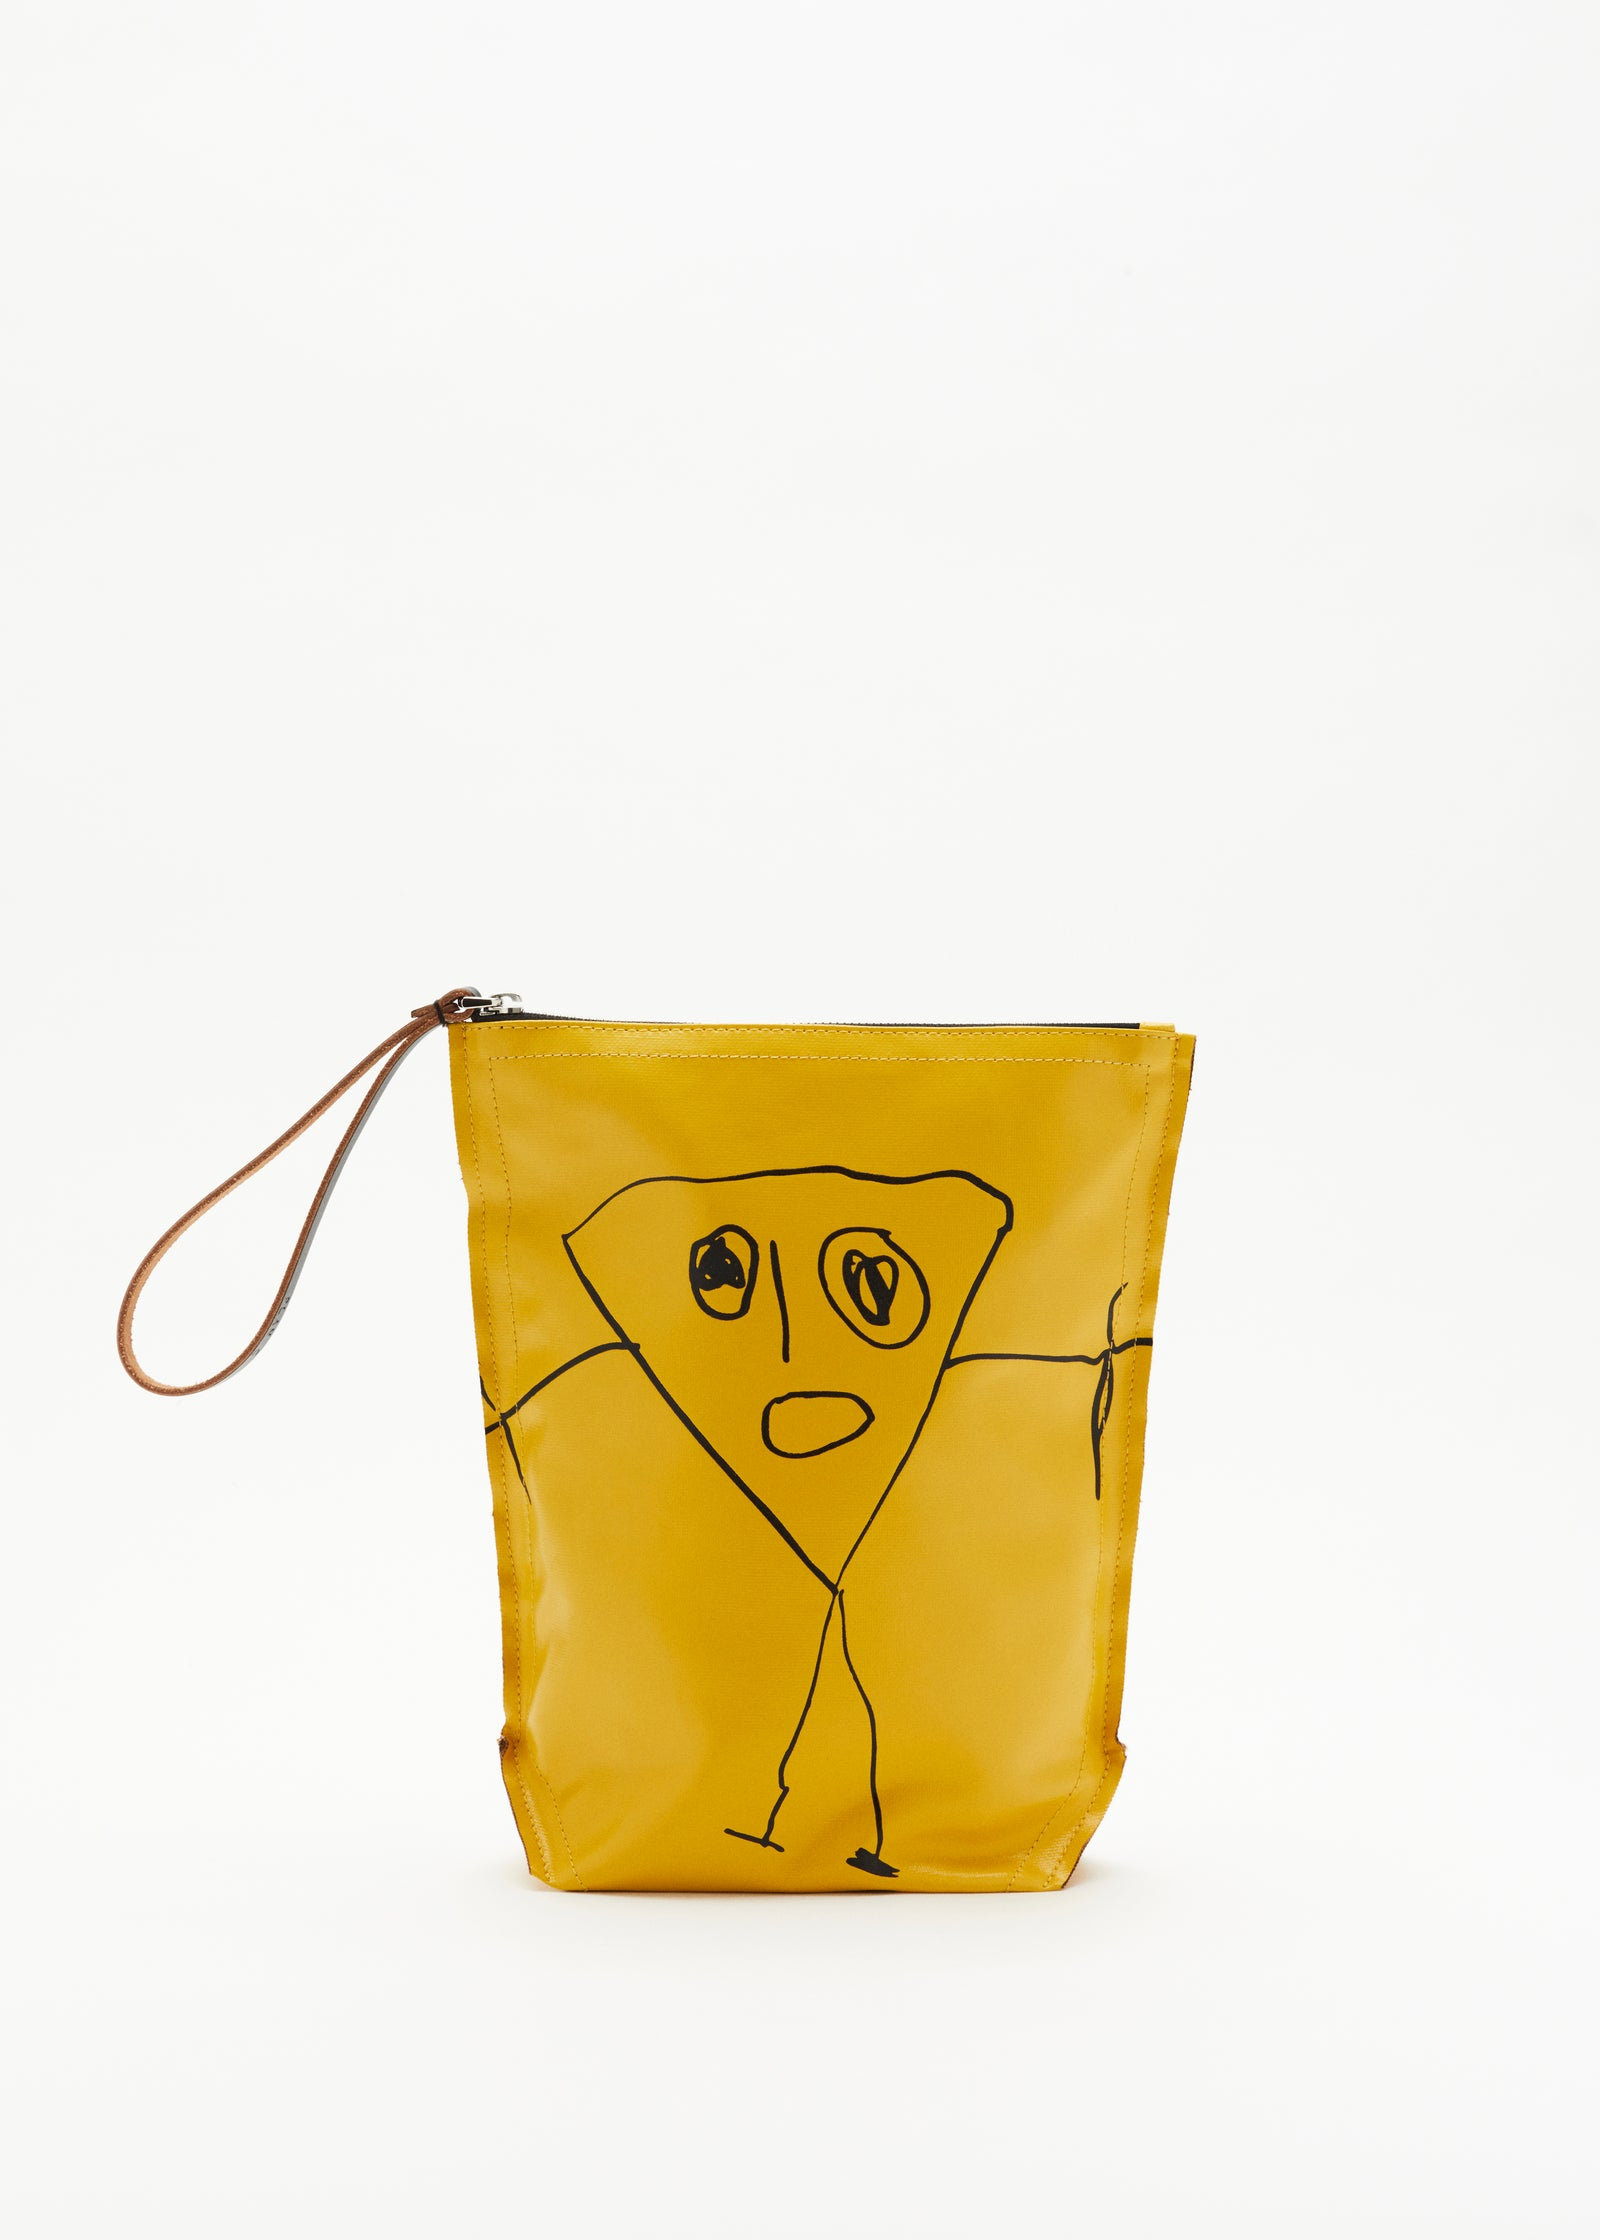 """PILI AND BIANCA"" YELLOW POUCH"